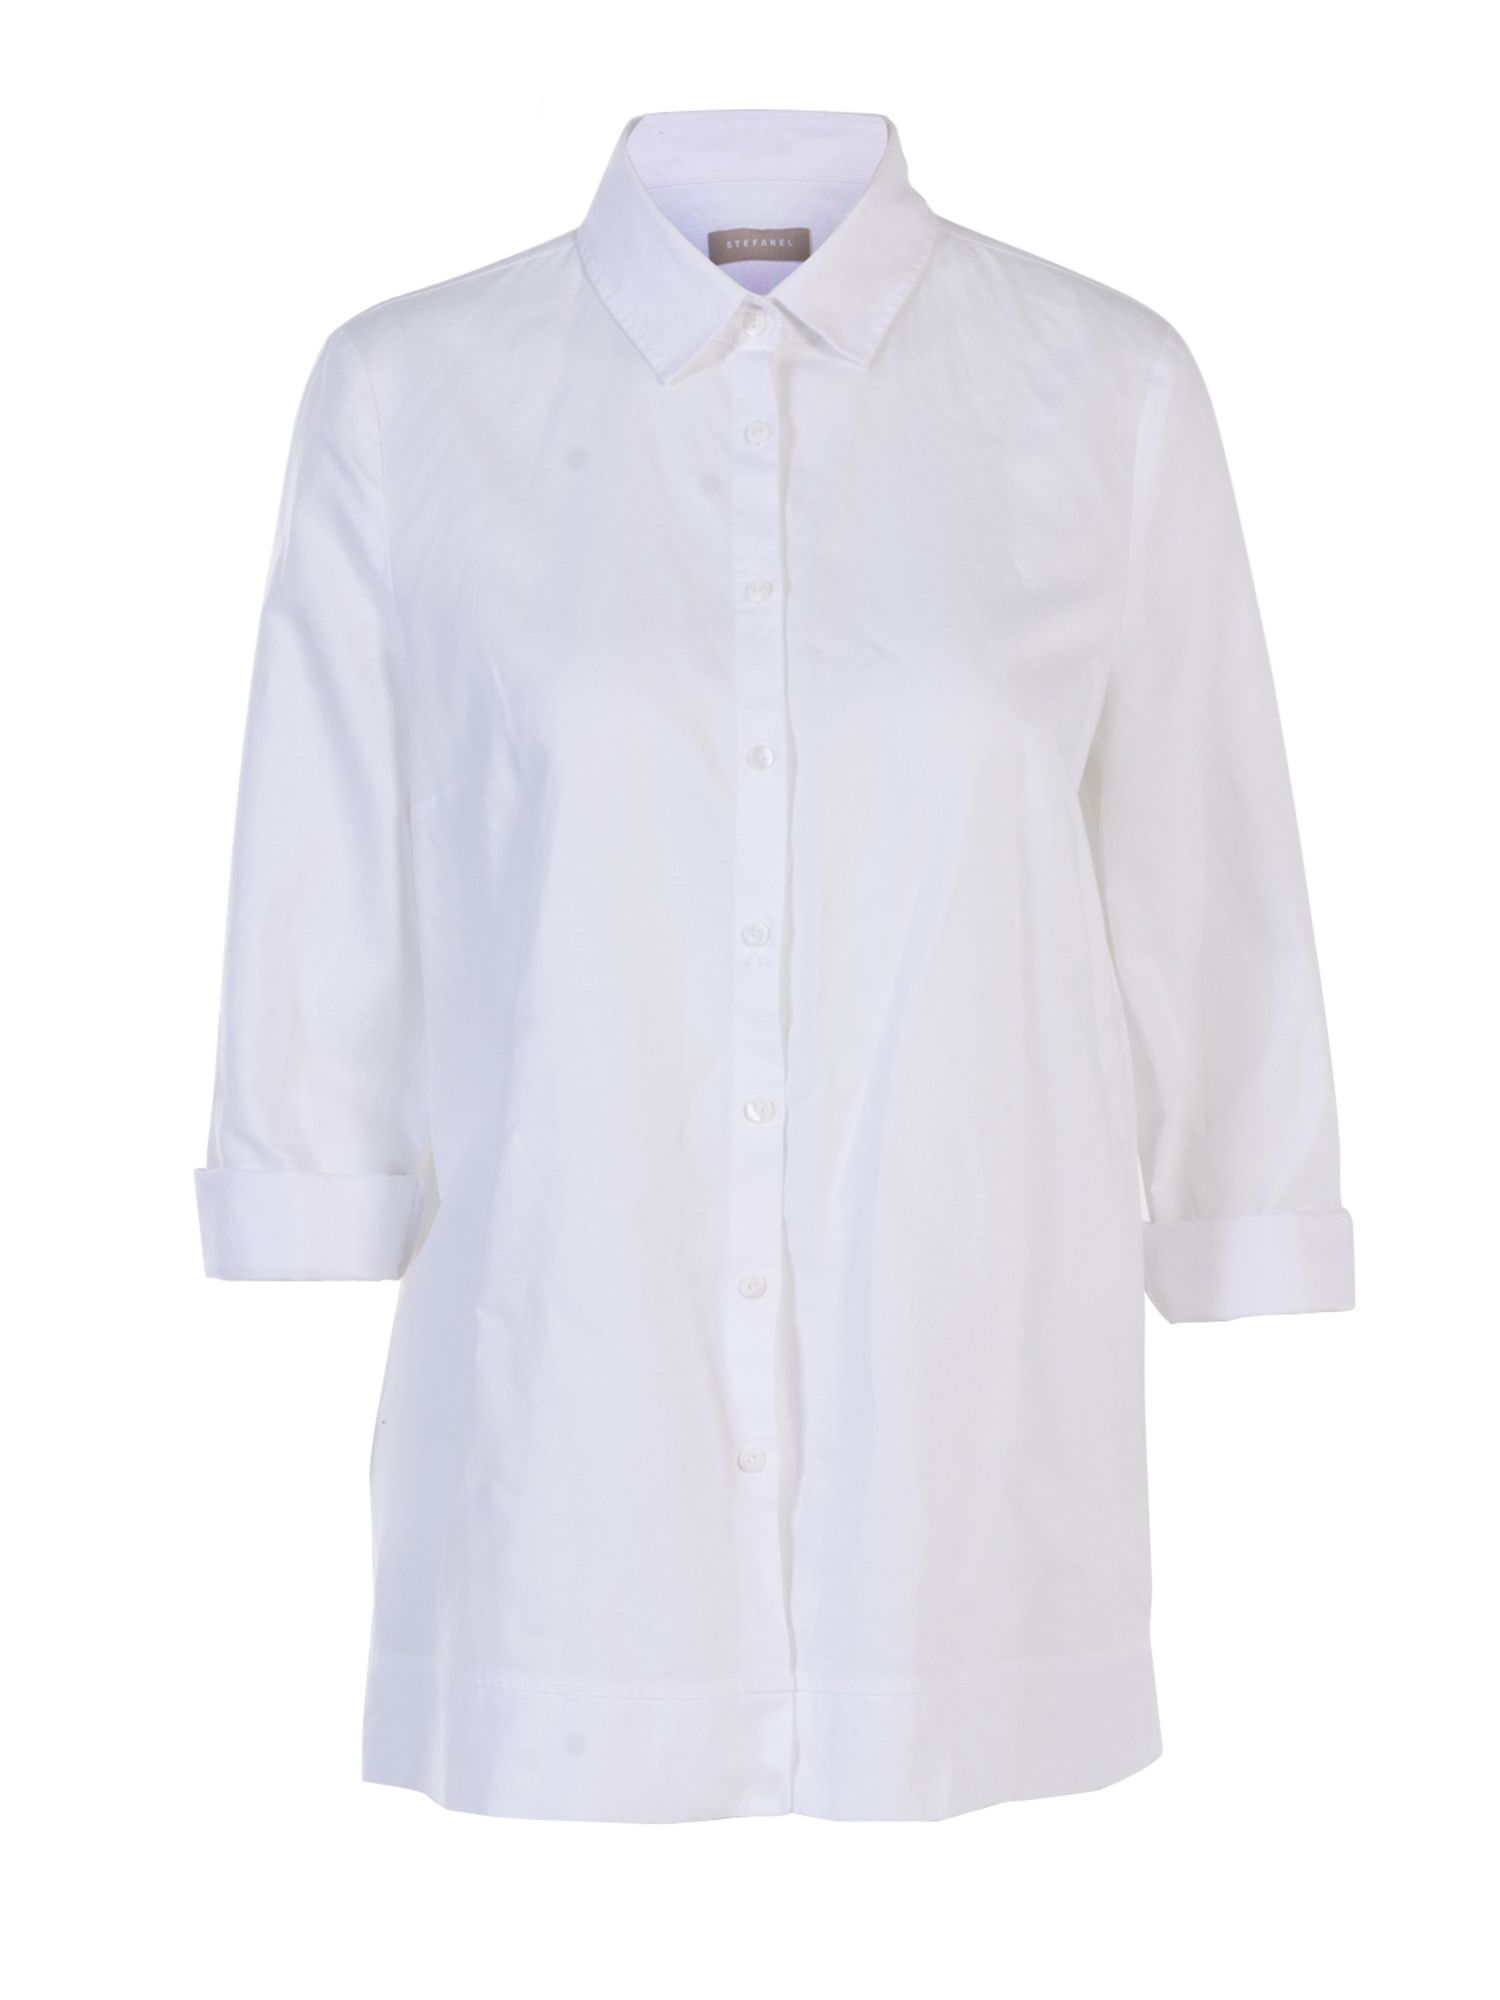 Stefanel Cotton And Linen Shirt, White